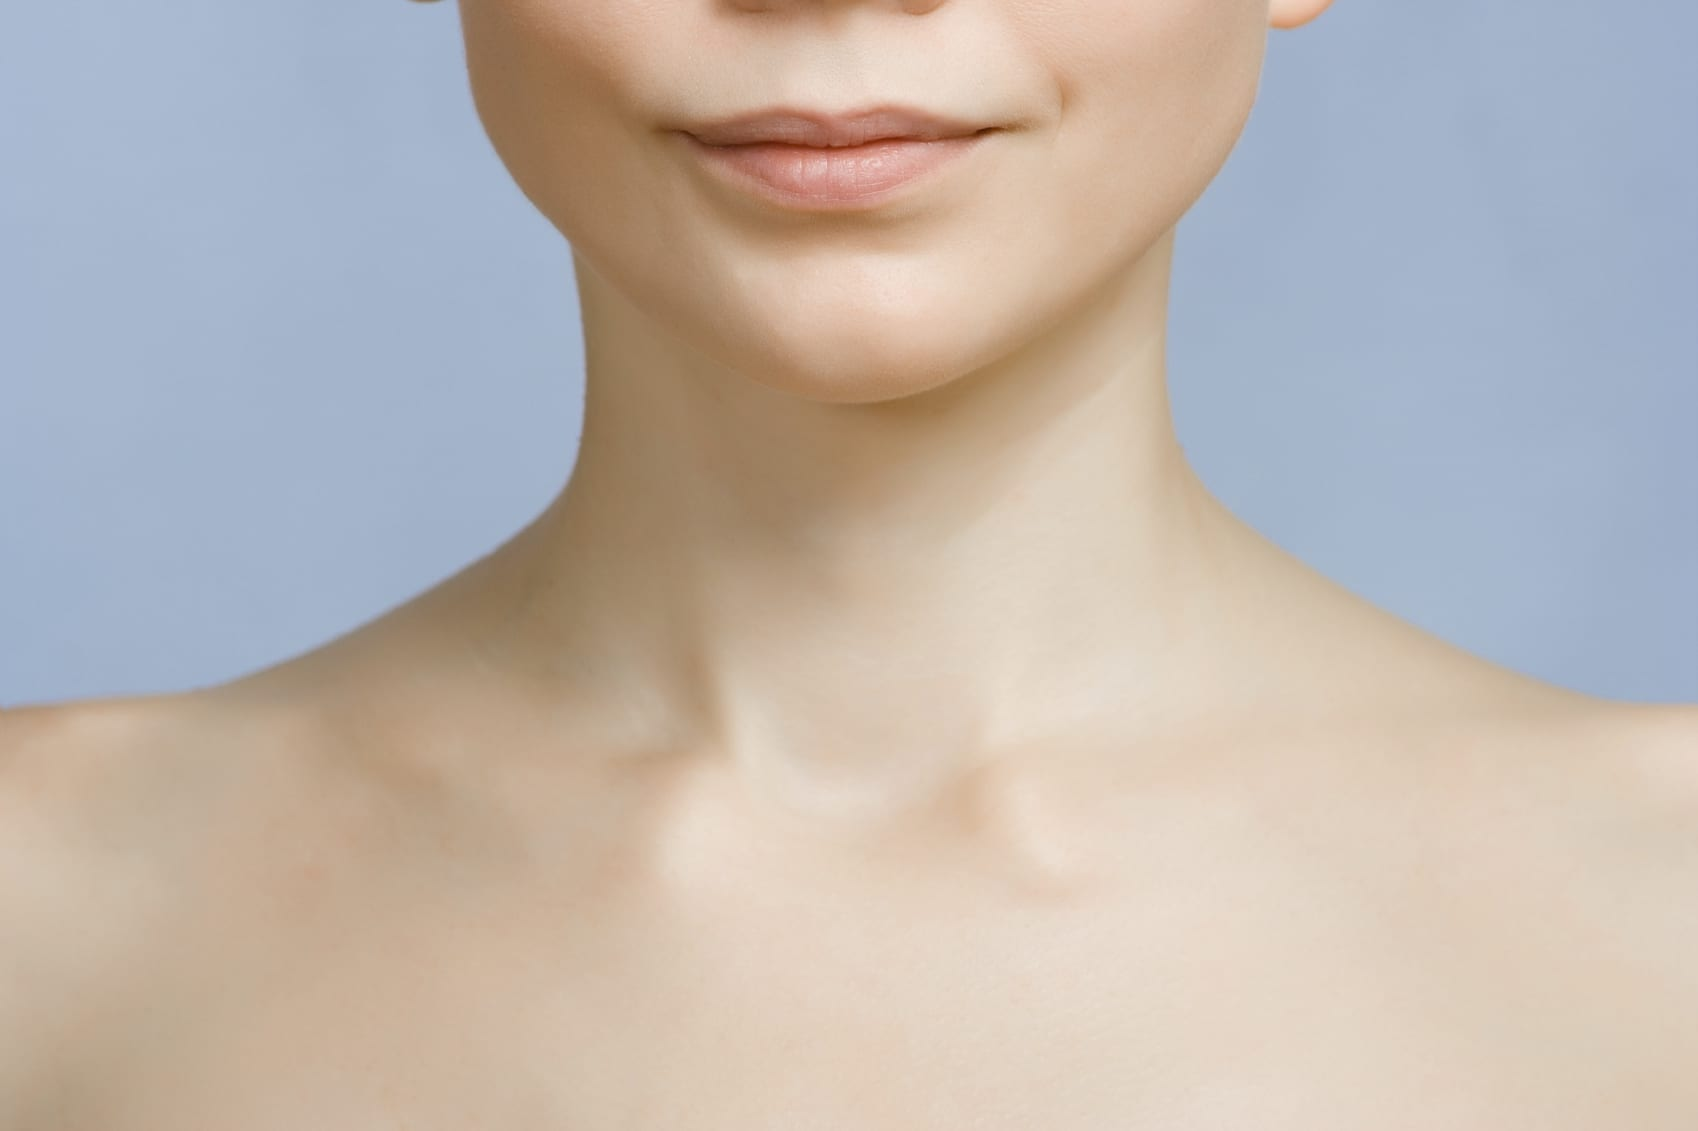 An image of young woman's lips, chin and shoulders. Focus is set at her lips and chin